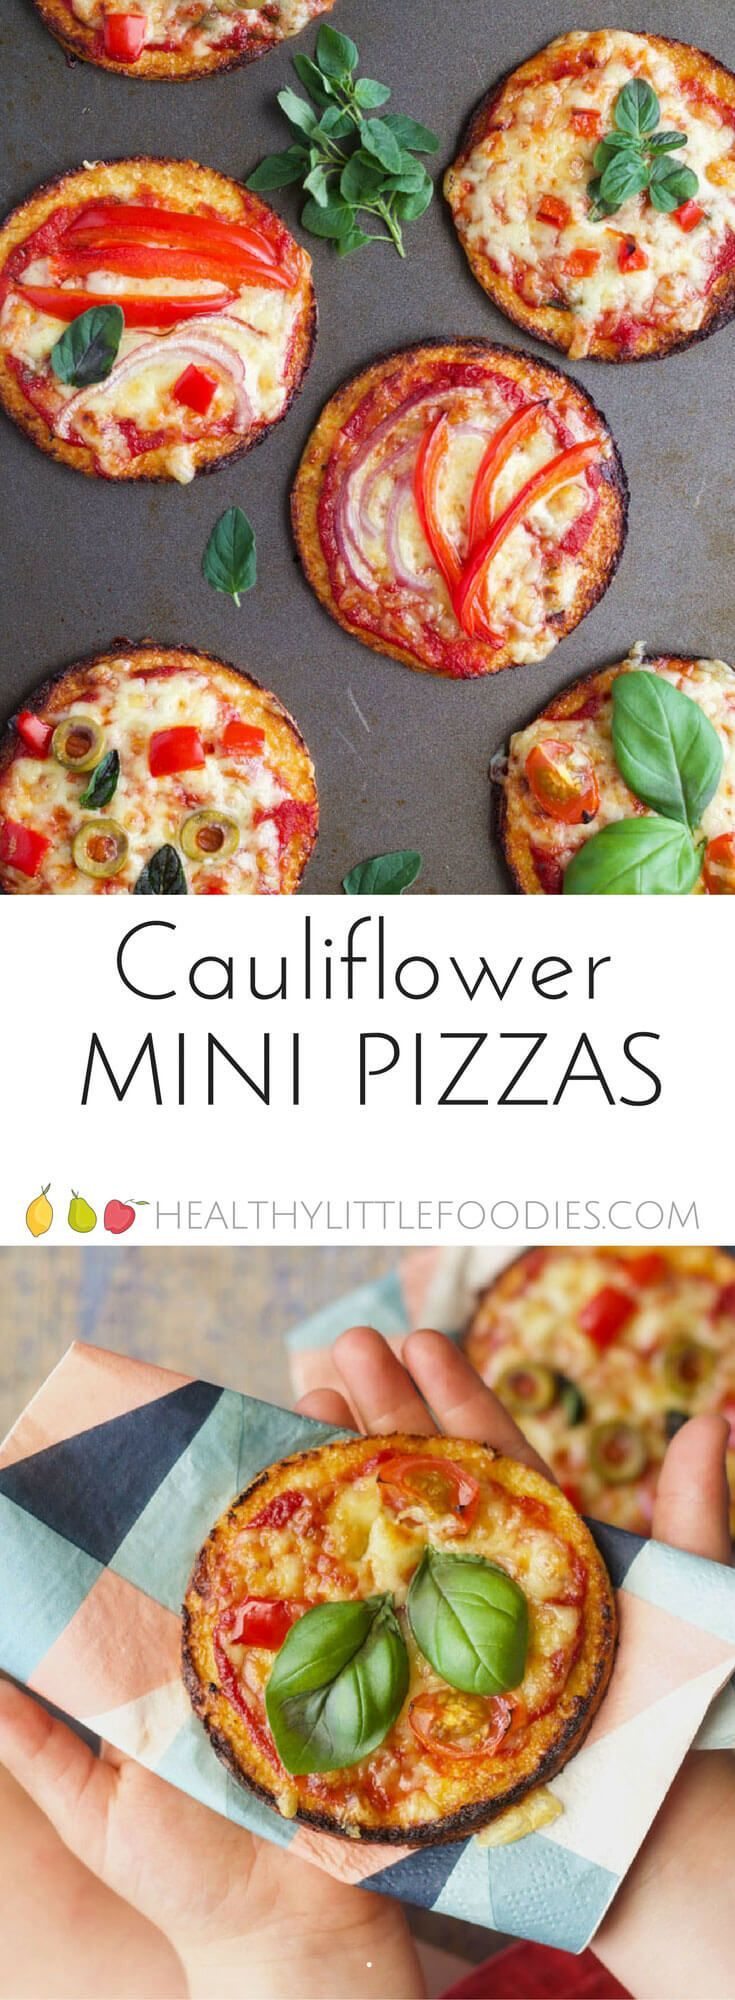 Cauliflower base mini pizzas - a great way to add more veggies into a kid favourite dish. #pizza #kidfood #kidsfood #hiddenveg #hiddenveggies via @hlittlefoodies